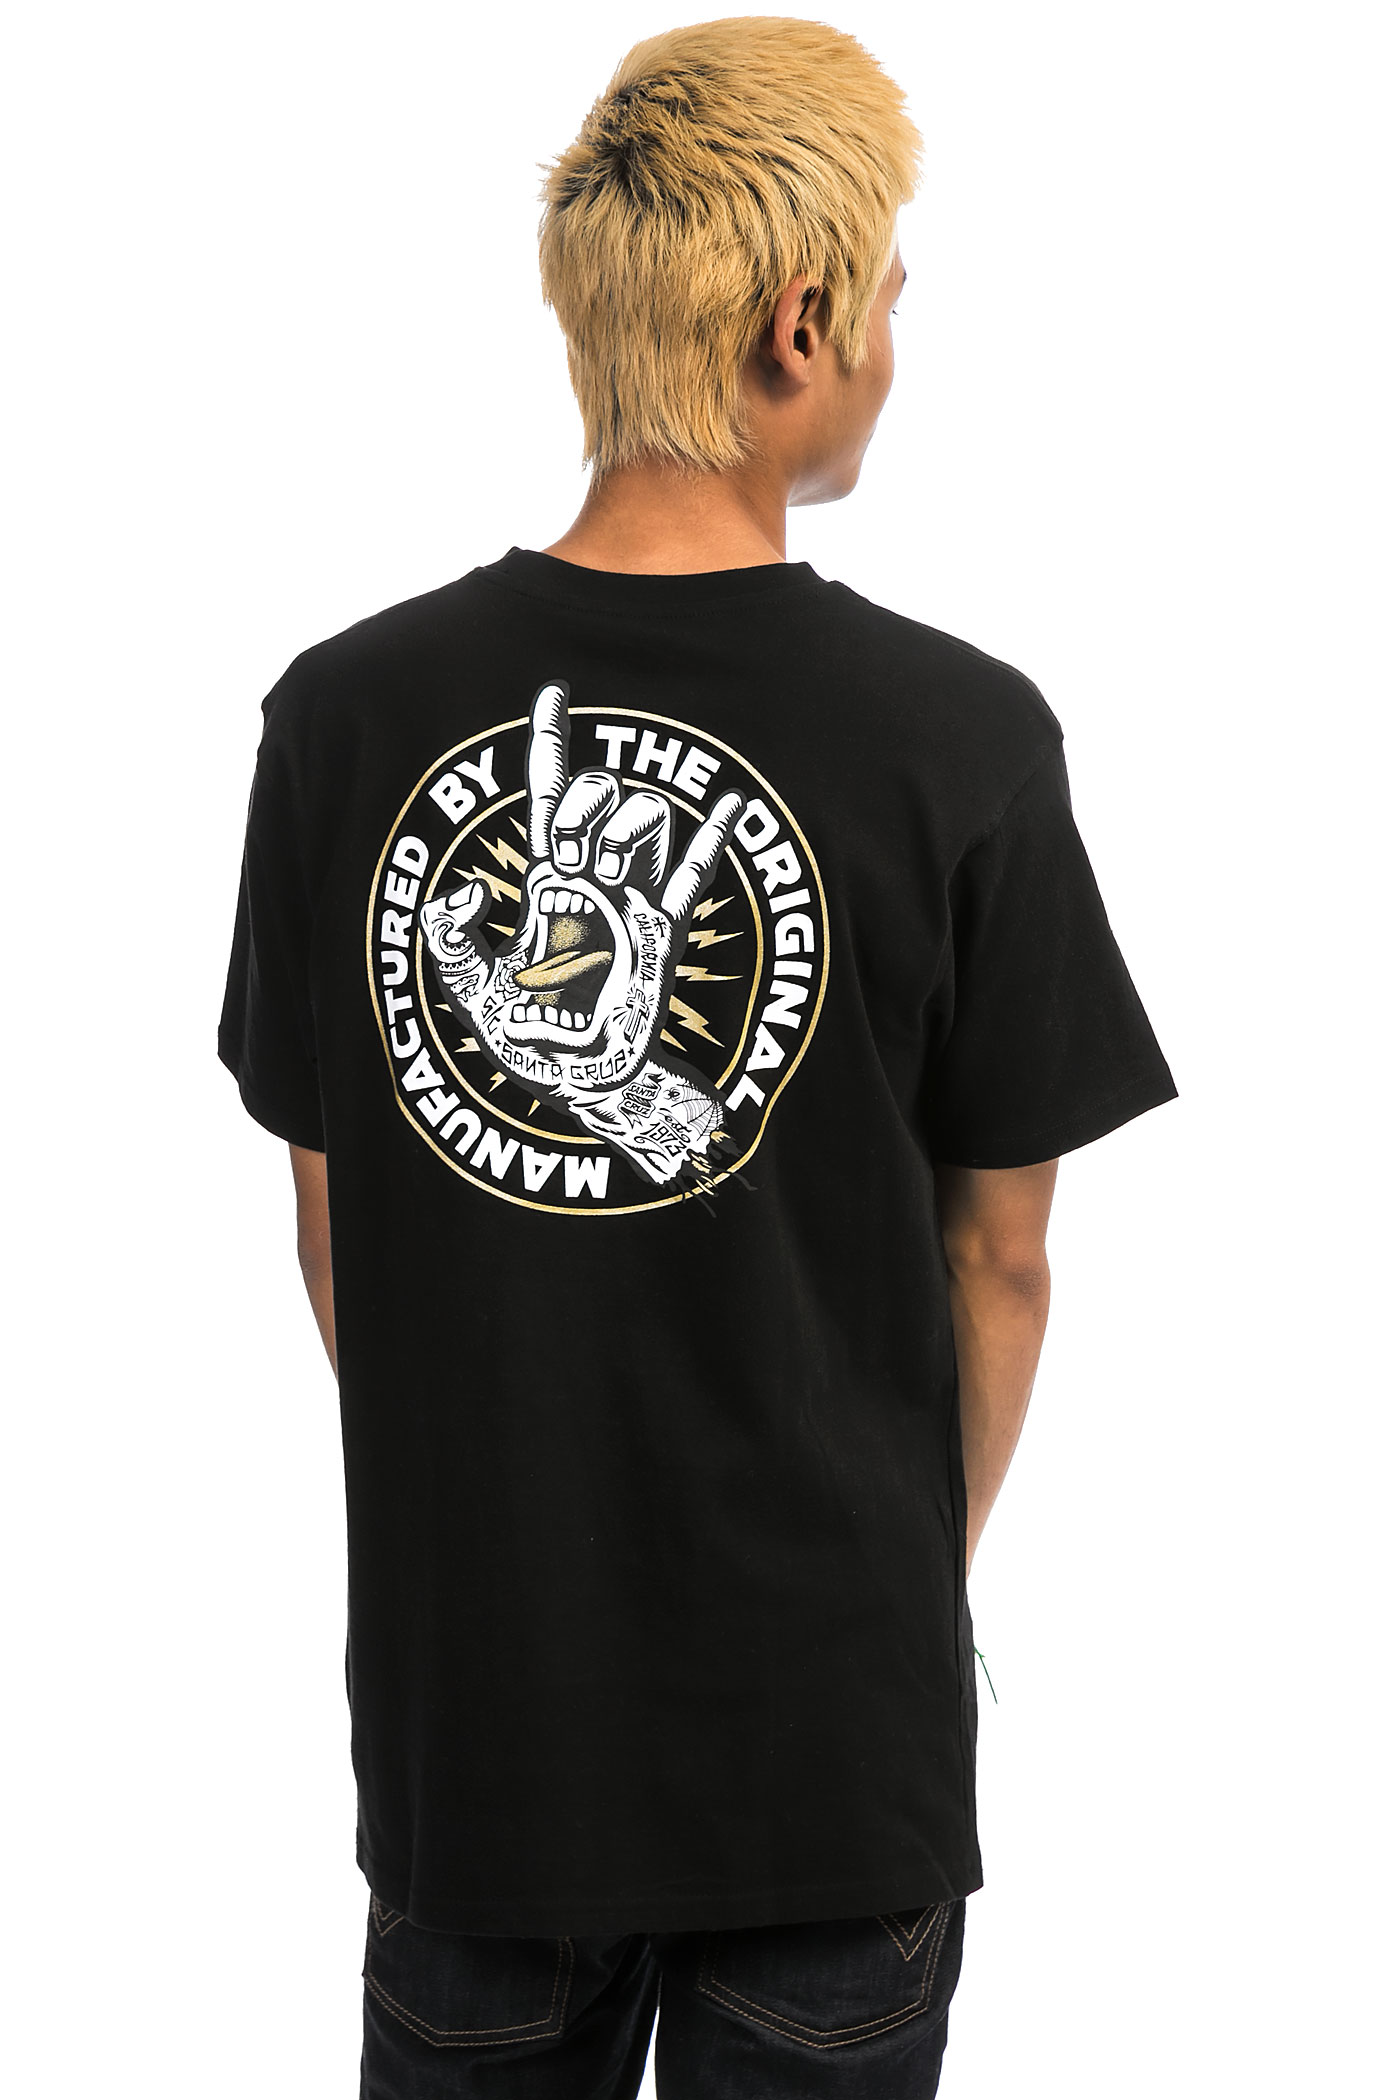 T black shirt rock -  Santa Cruz Rock Tattoo Hand T Shirt Black